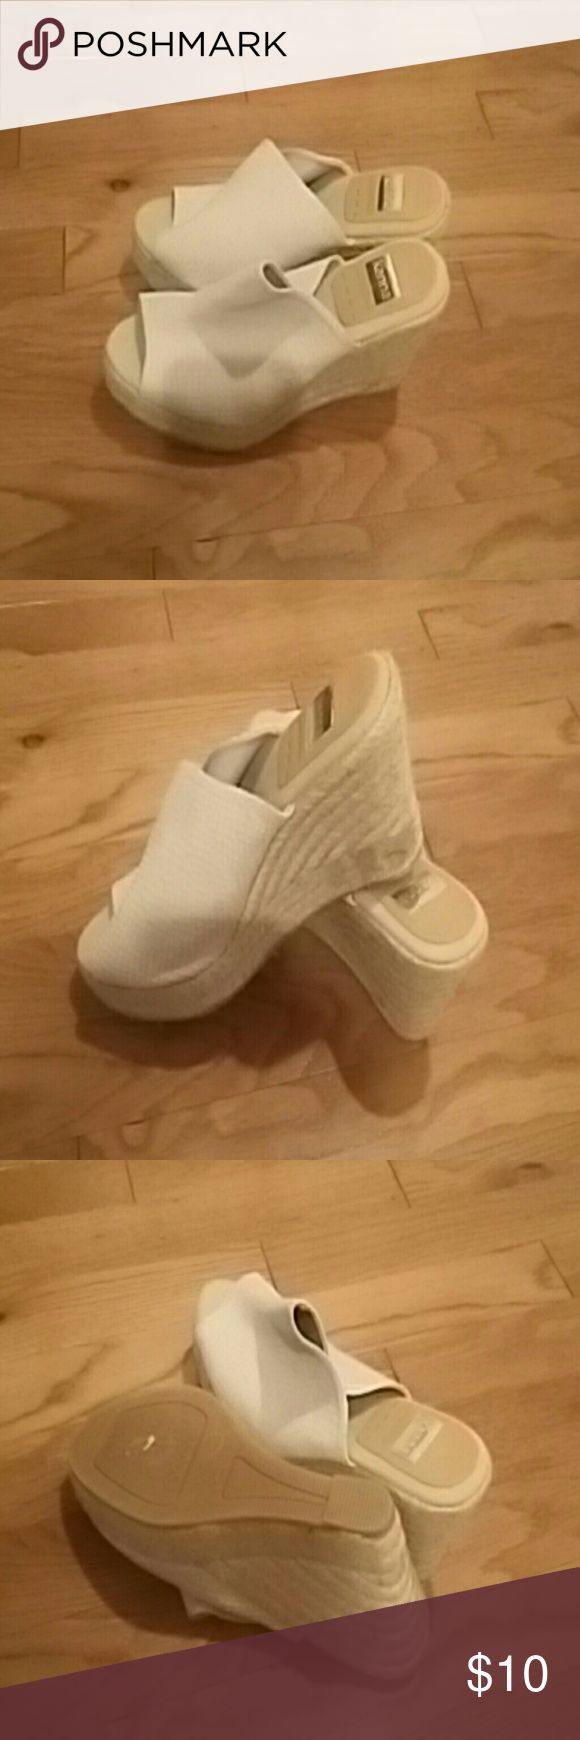 Beige wedge shoes Great condition beige wedge heels Shoes Wedges